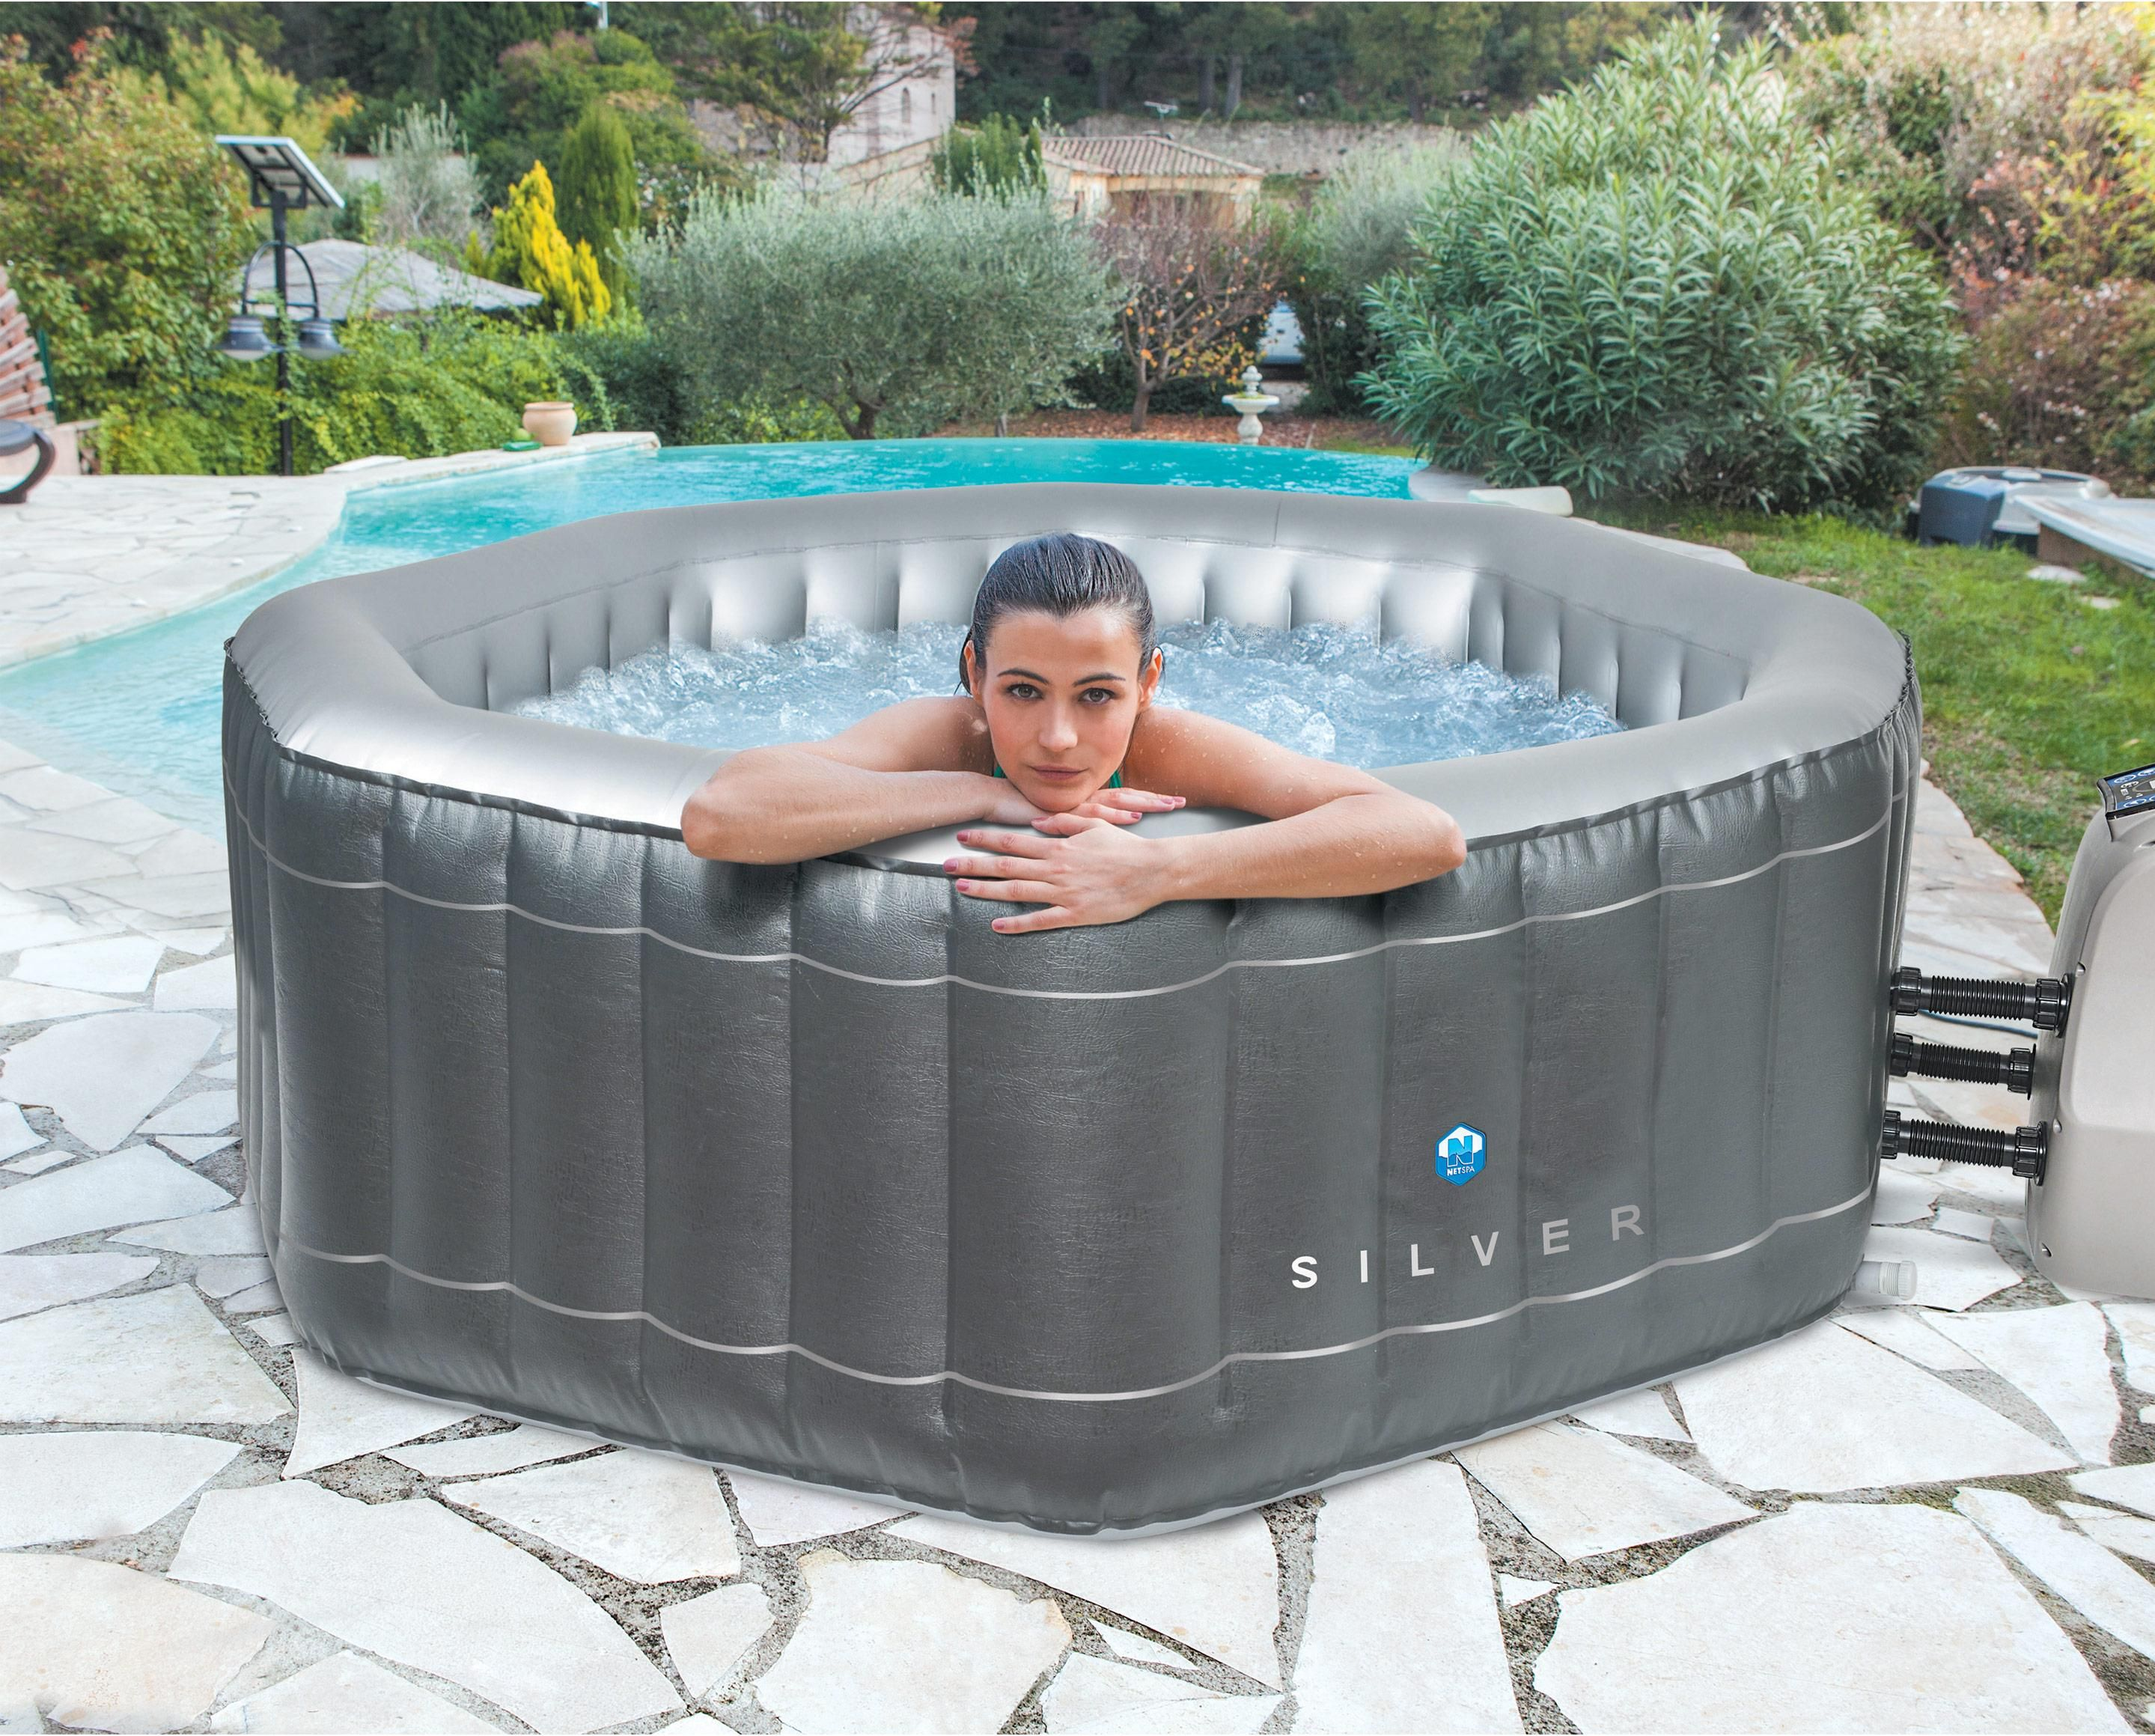 Spa Gonflable A Leroy Merlin spa gonflable poolstar silver octogonal | spa gonflable, spa